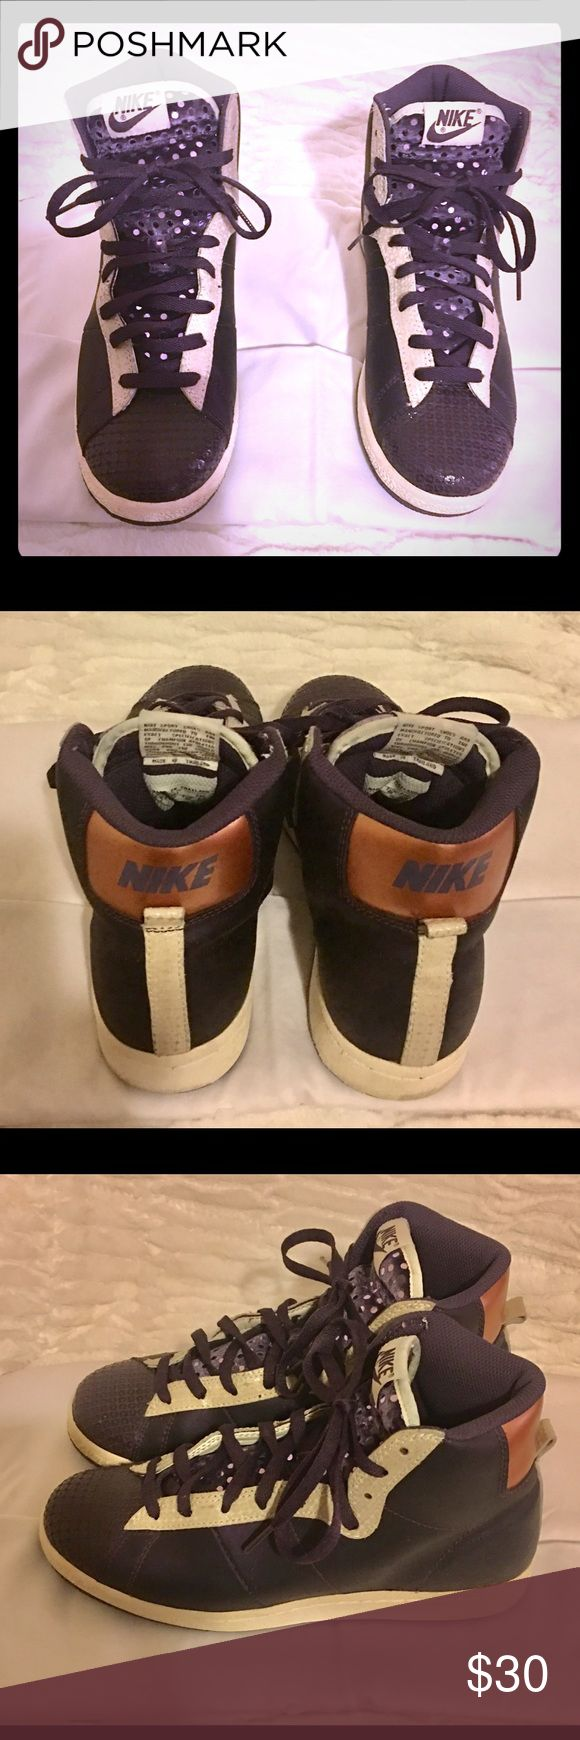 Authentic Mid Top Womens Nike sneakers Great condition, purple and cream color, stylish and comfortable Nike Shoes Athletic Shoes